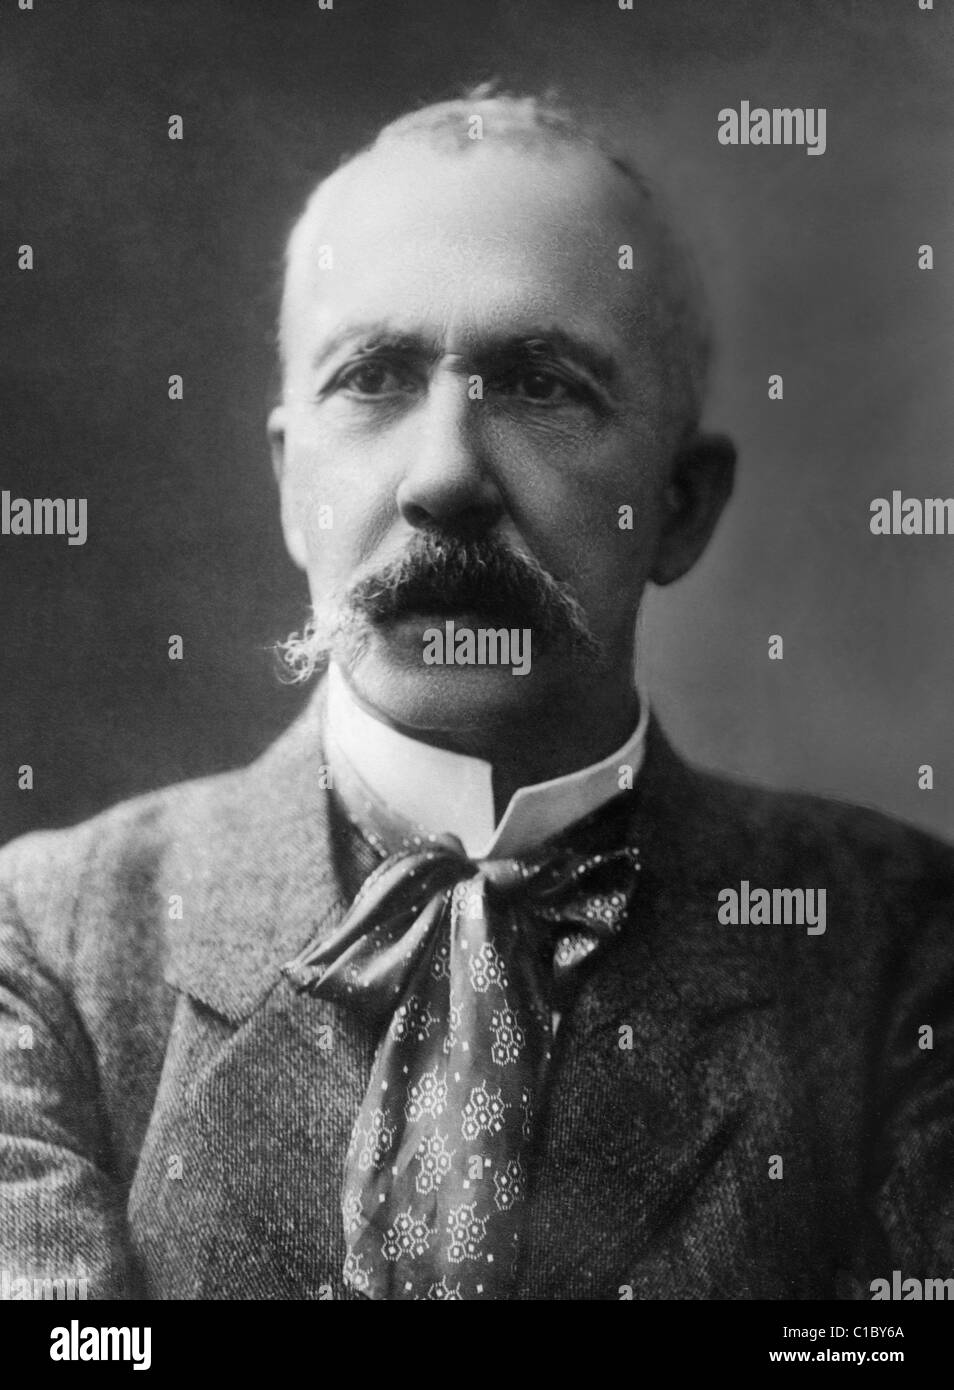 French physiologist Charles Richet (1850 - 1935) - winner of the Nobel Prize in Physiology or Medicine in 1913 for - Stock Image